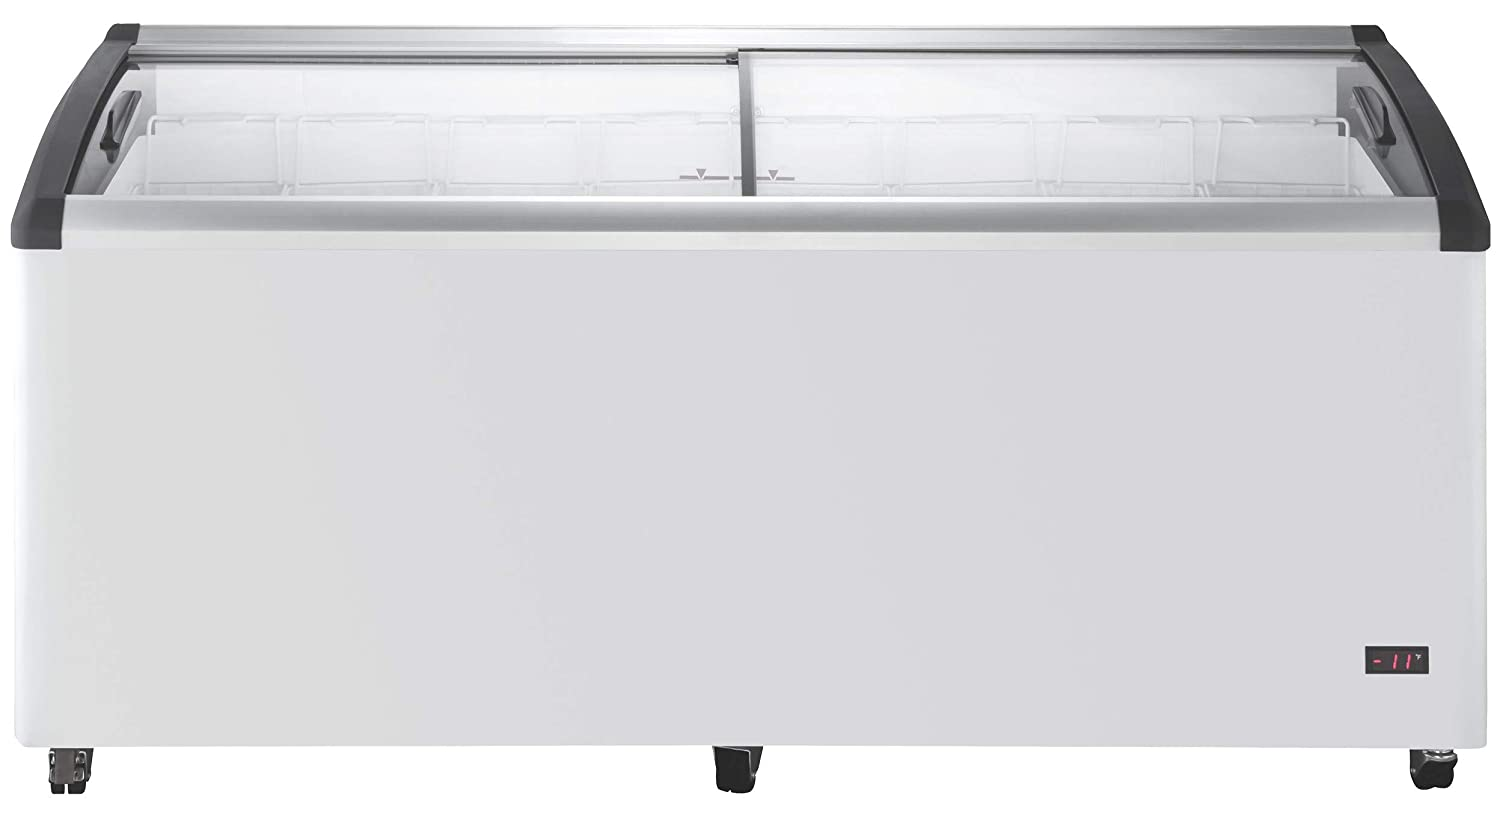 Chef's Exclusive Commercial Mobile Ice Cream Display Chest Freezer Curved Sliding Glass Lids Frost Free Sub Zero with 8 Wire Baskets, 71.7 Inch Wide, White 61vchJrvrAL._SL1500_